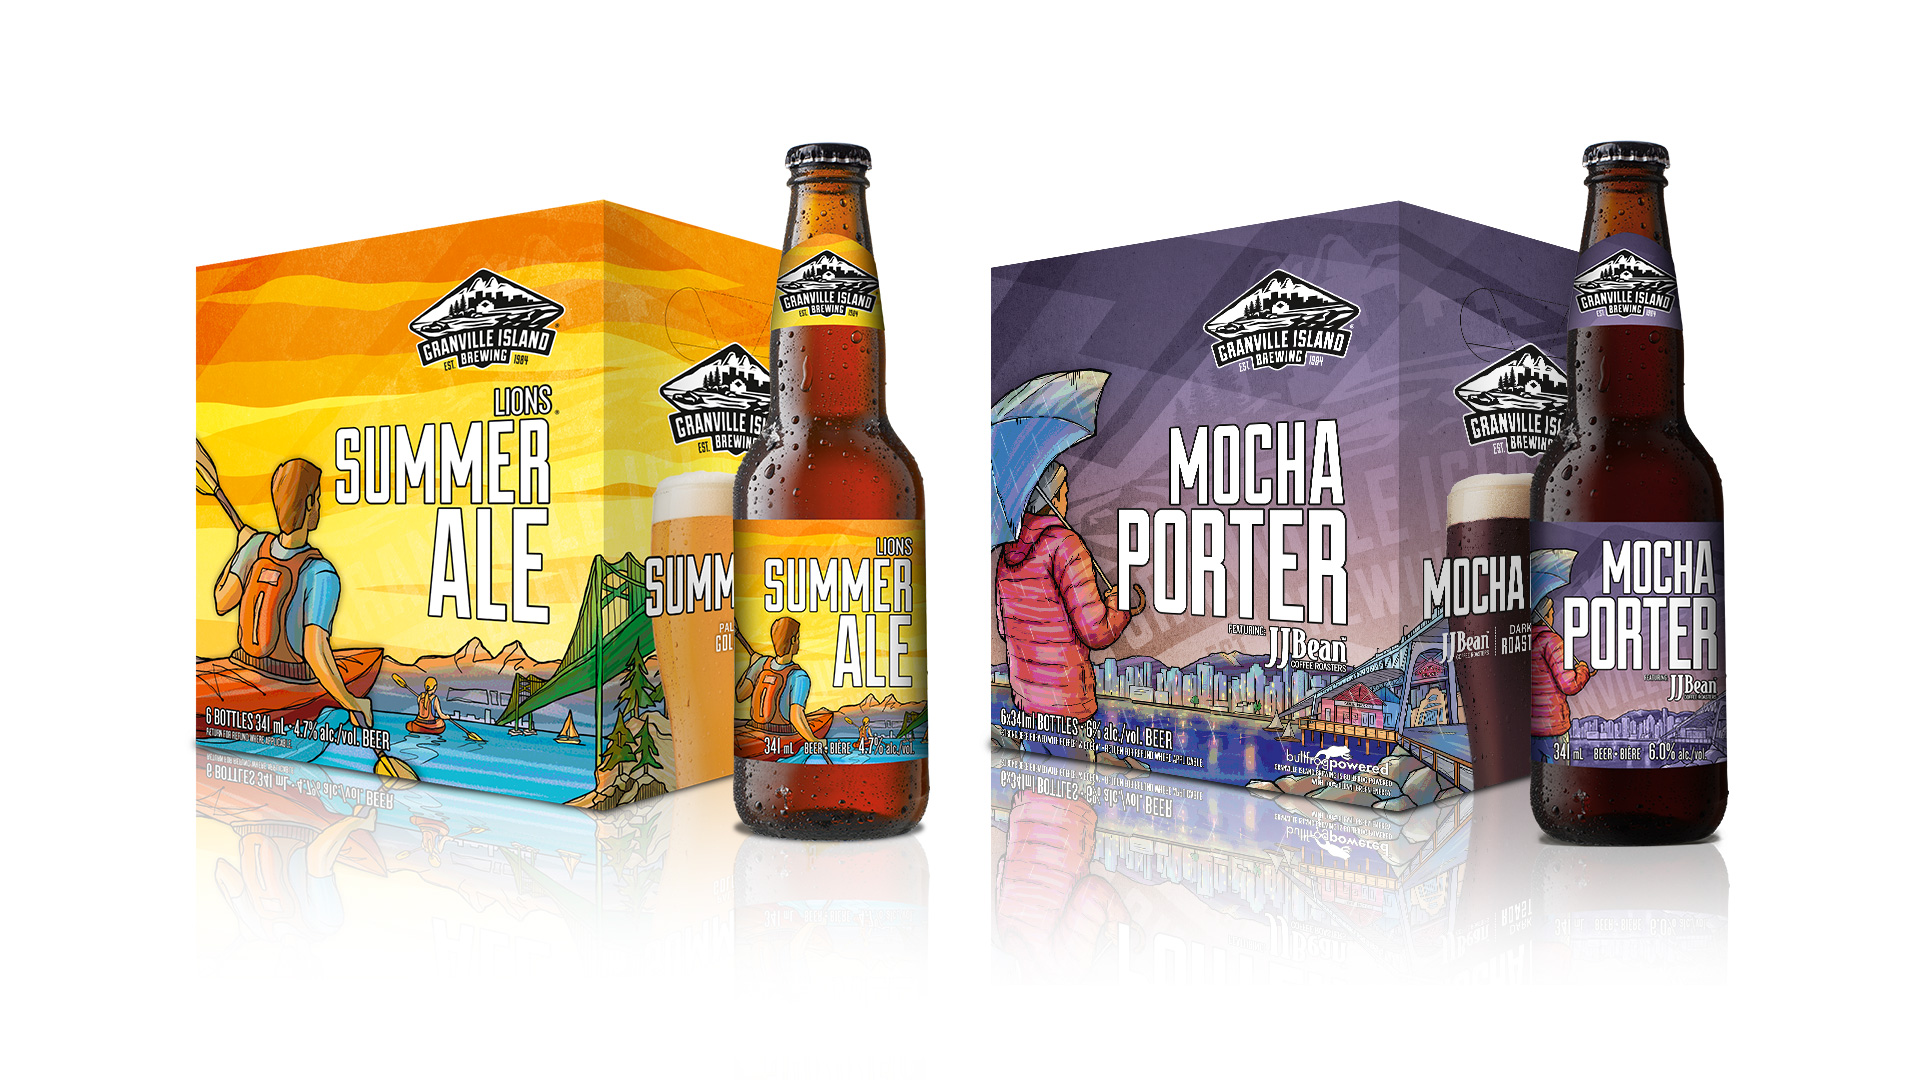 Granville Island Brewing: Packaging design / Illustration